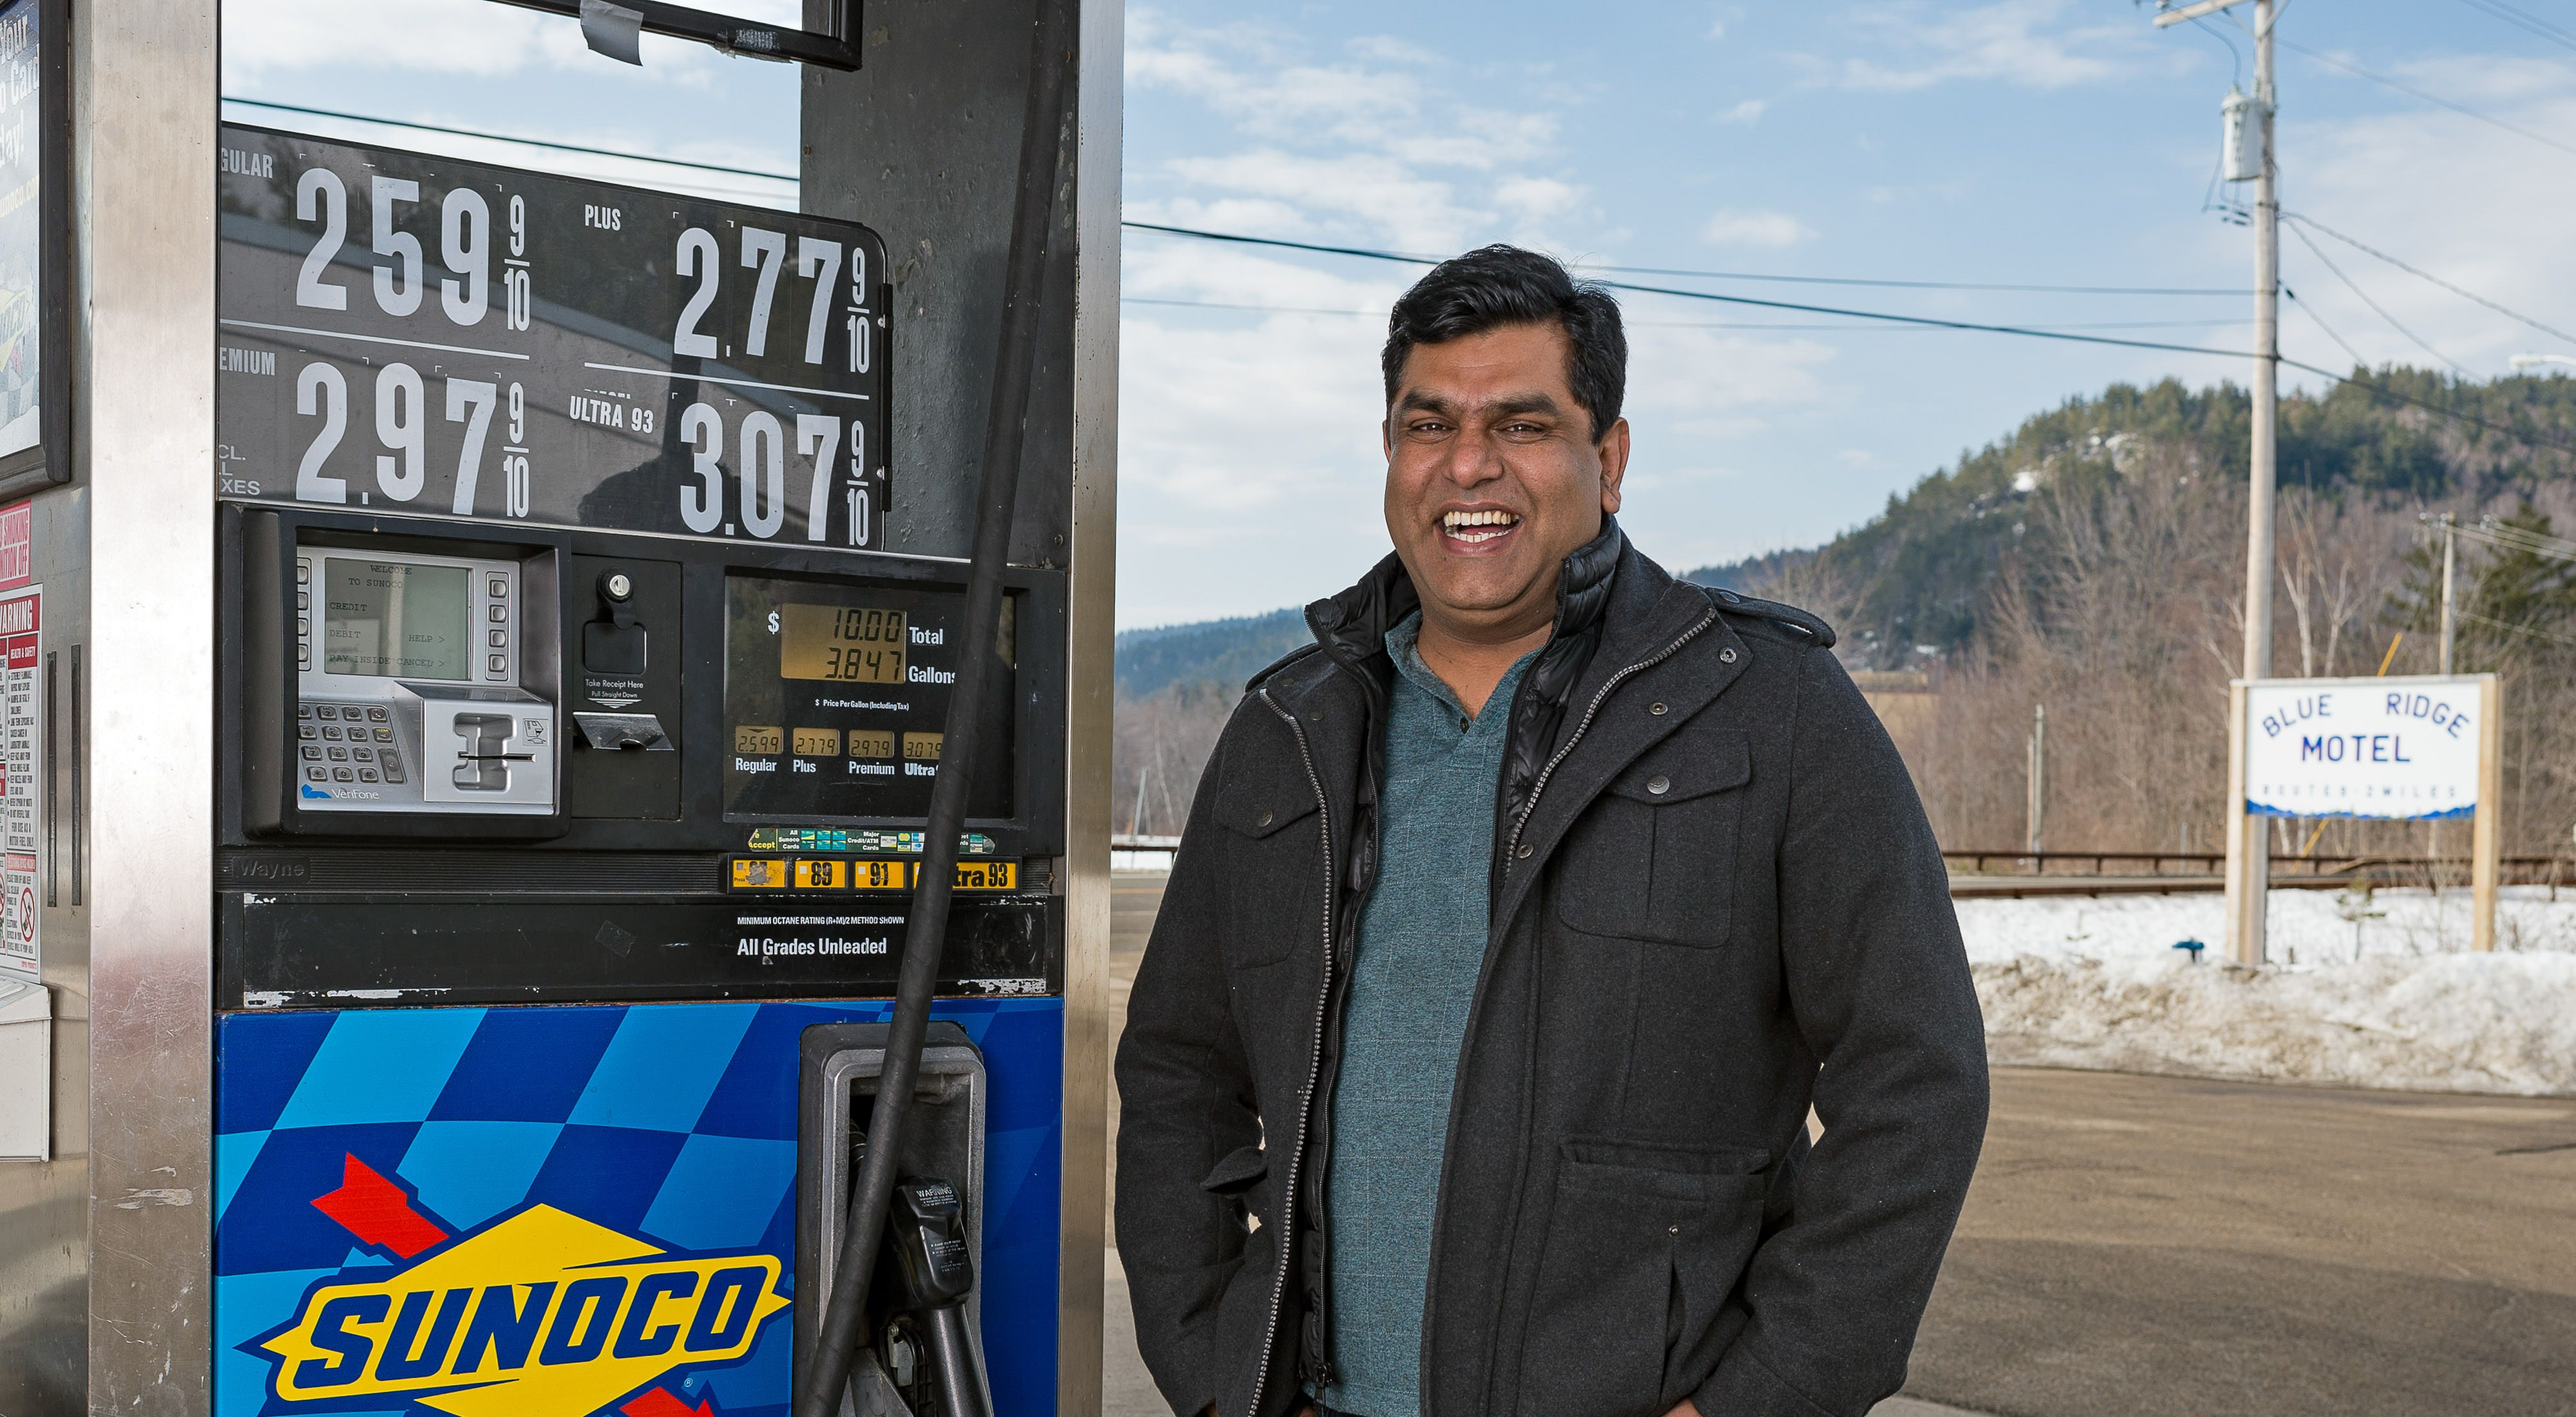 Muhammad Ahmad is one of our microenterprise grant winners, bringing small business opportunity to tourism in the Adirondacks.